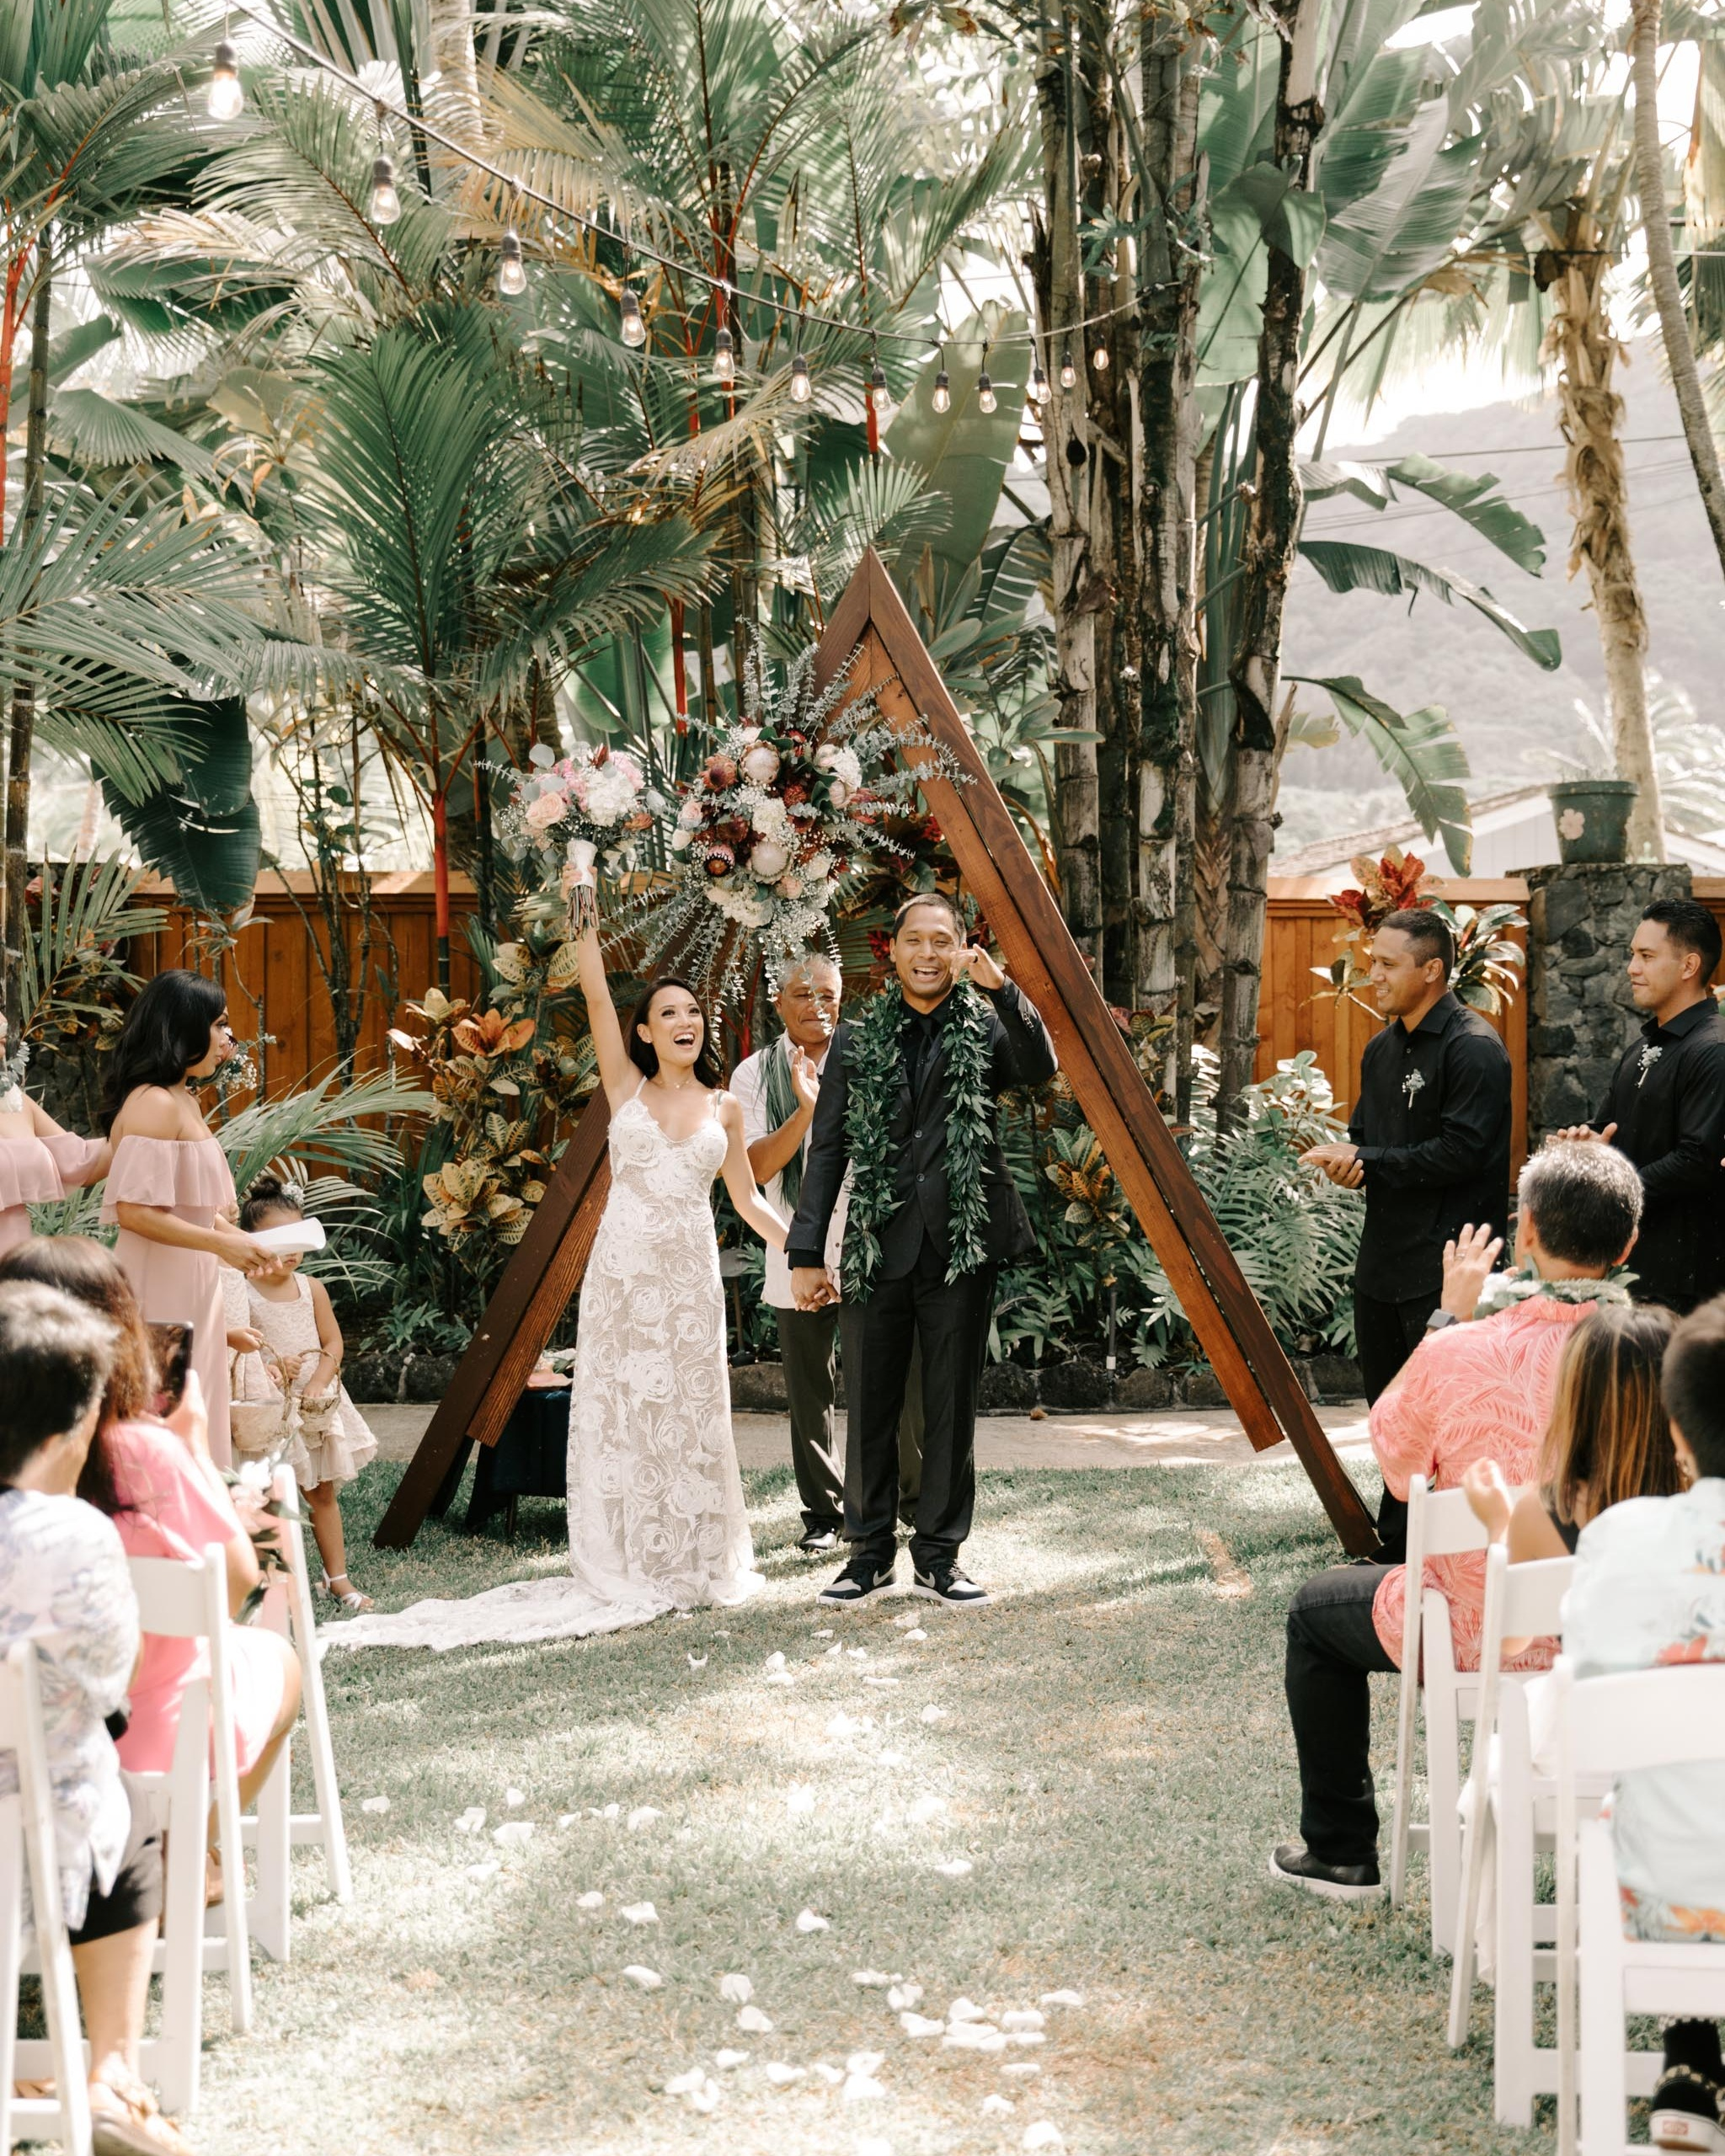 Just Married Photo - Hale Koa Phineas Estate Wedding By Hawaii Wedding Photographer Desiree Leilani